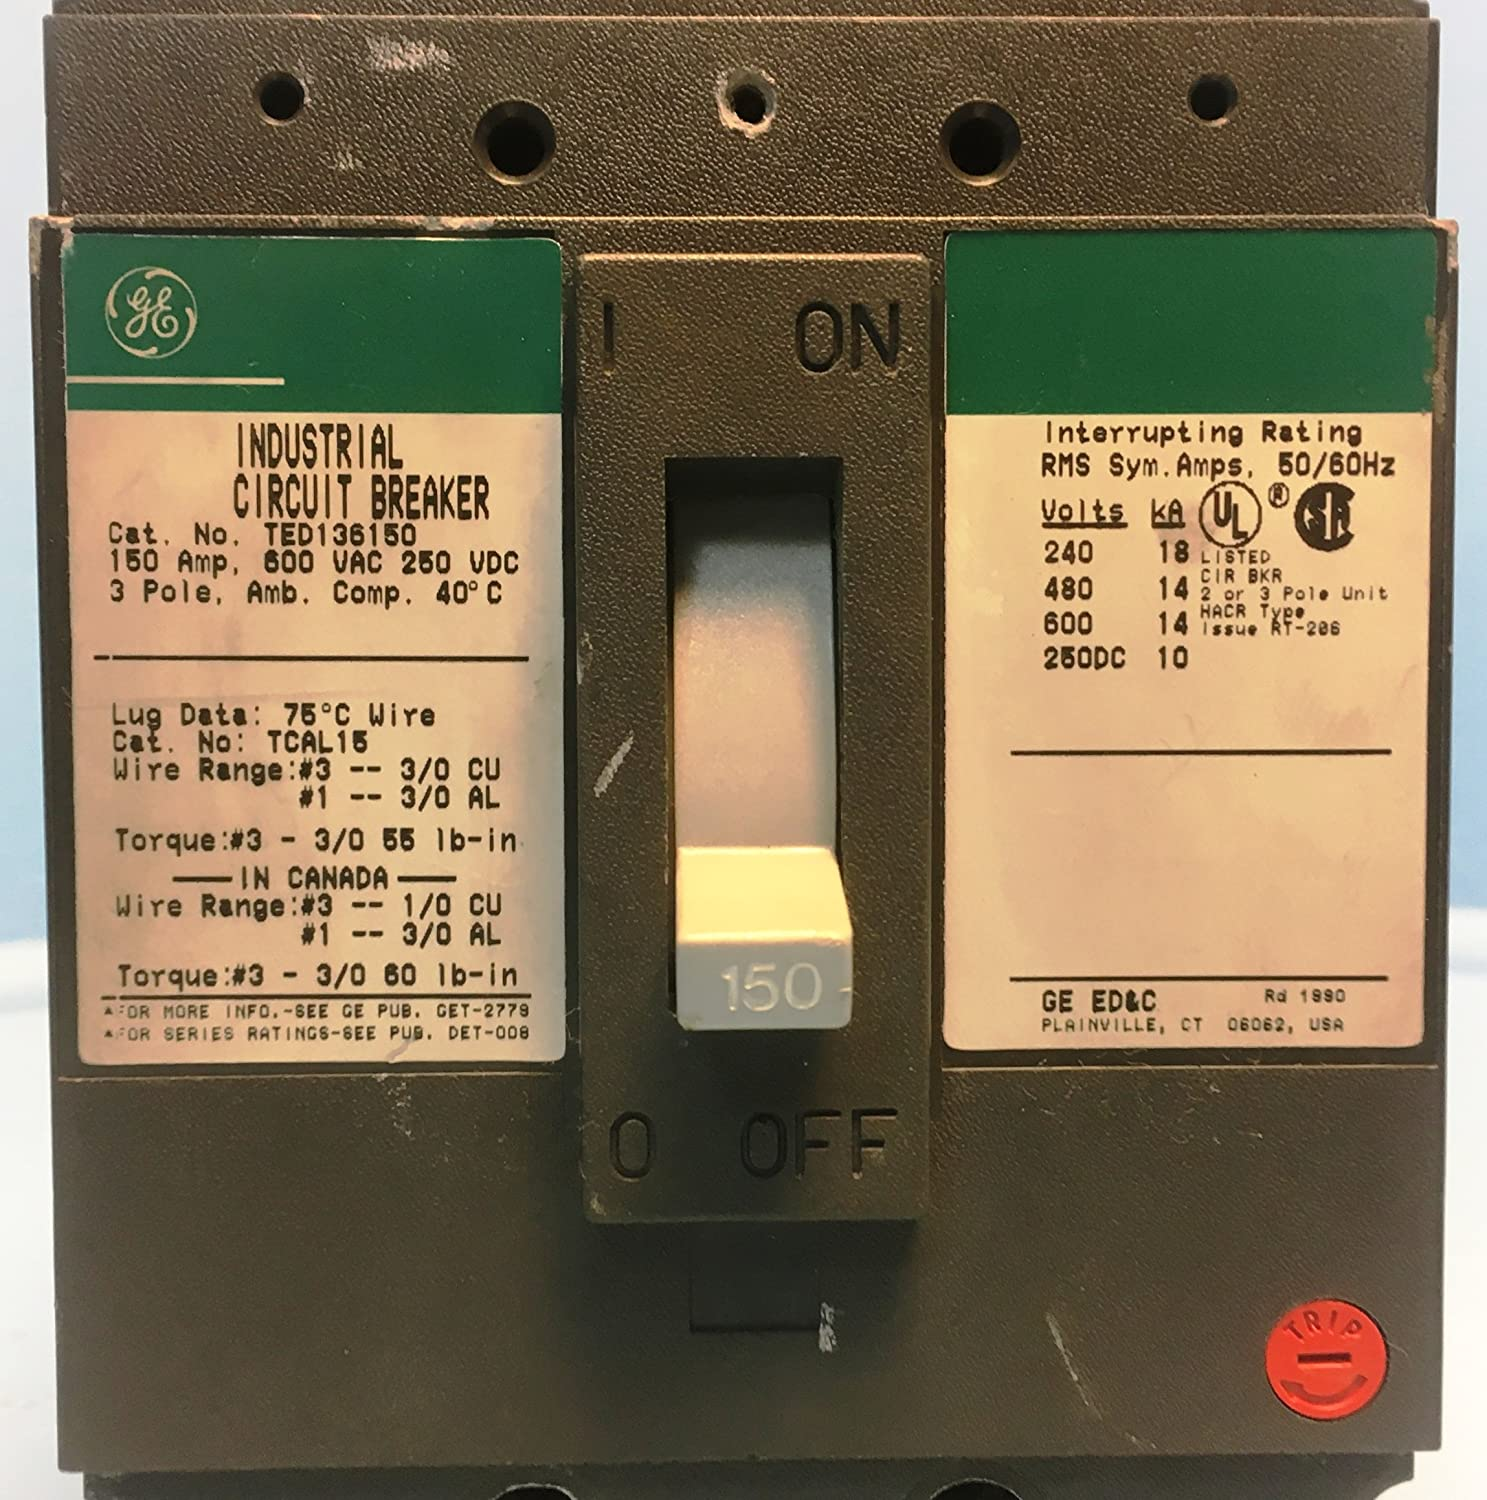 General Electric Ted136150 Circuit Breaker 3 Pole 600vac 150a 4 Wire Schematic Diagram 480 Volt Industrial Scientific